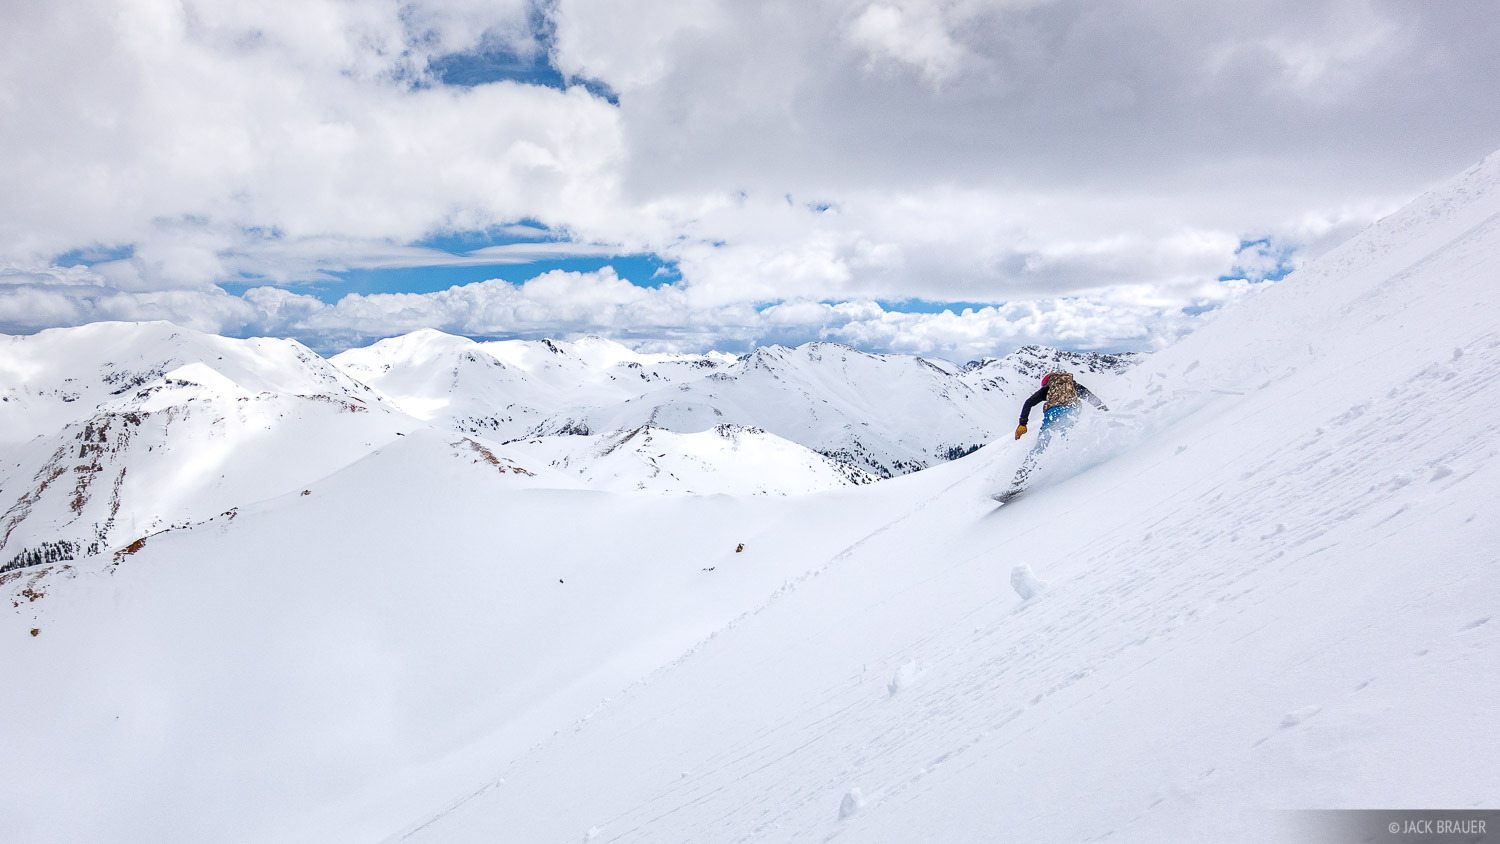 Colorado, San Juan Mountains, snowboarding, photo